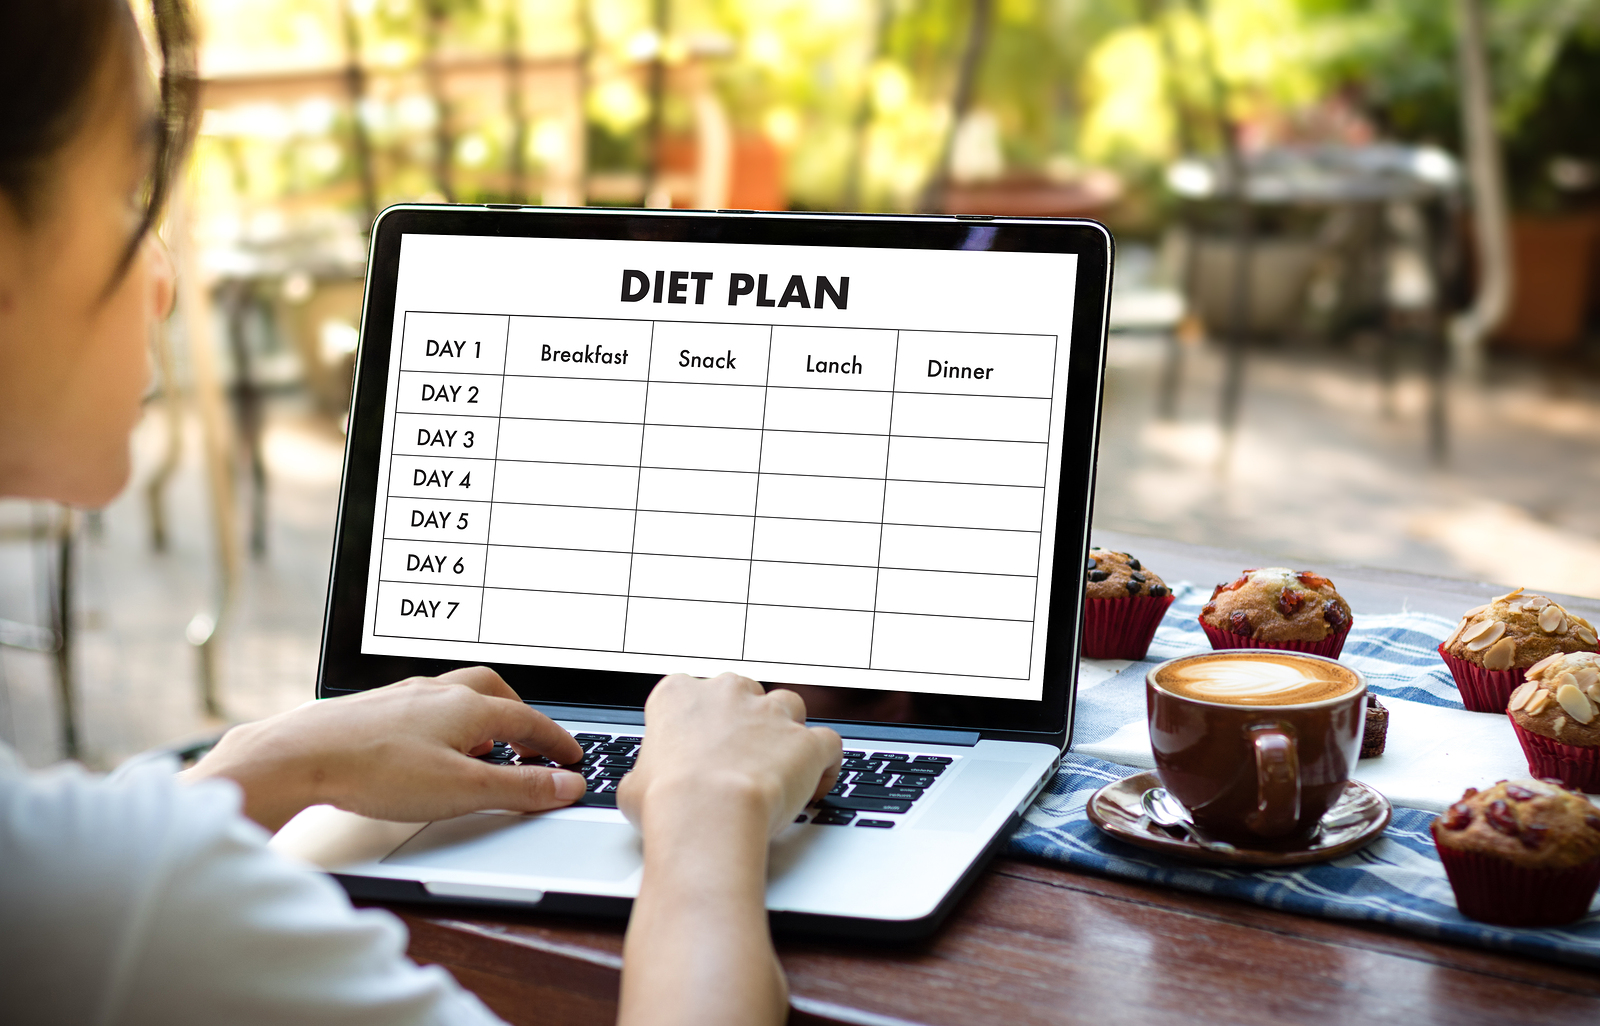 DOES DIET ACTUALLY MEAN D-I-E  ?